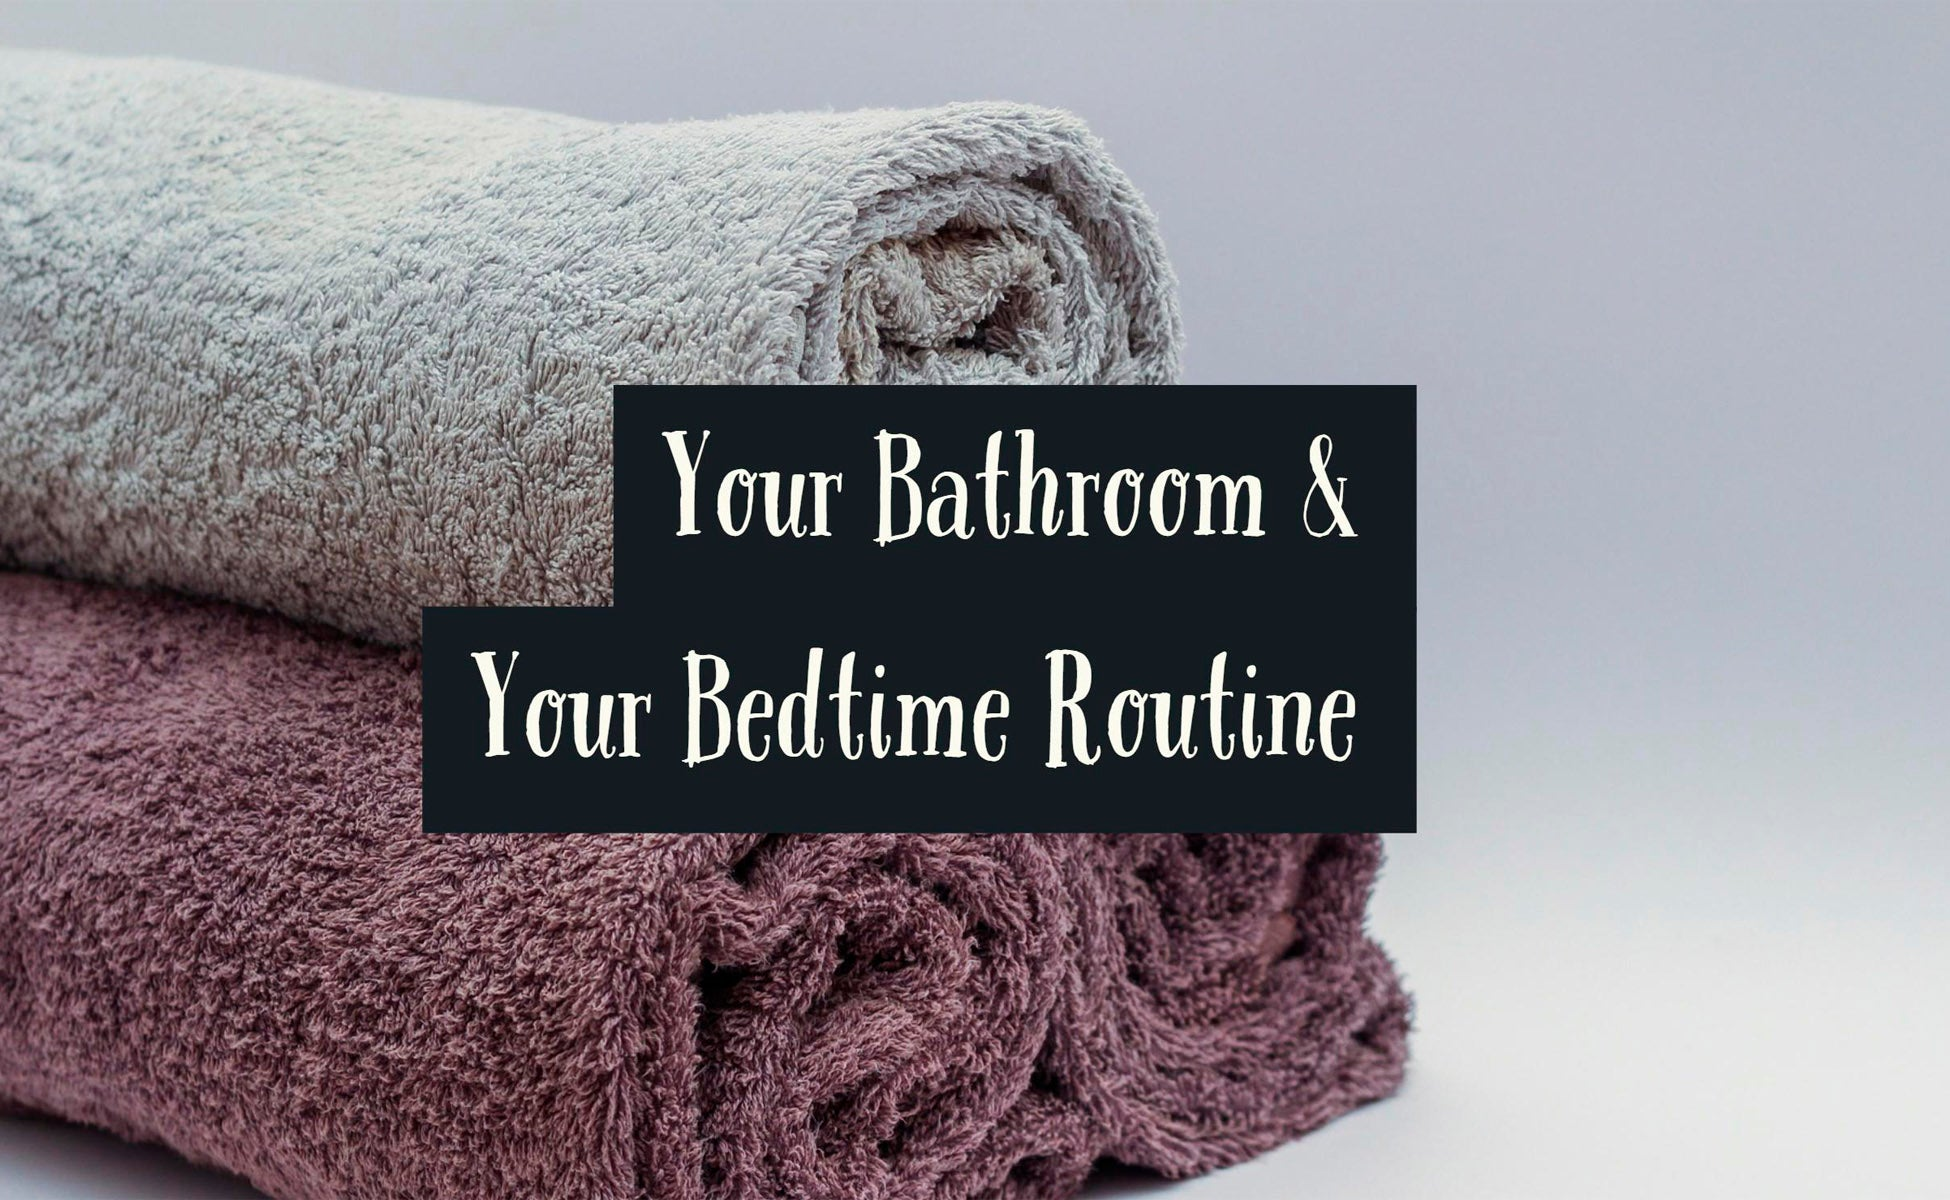 Your Bathroom & Your Bedtime Routine